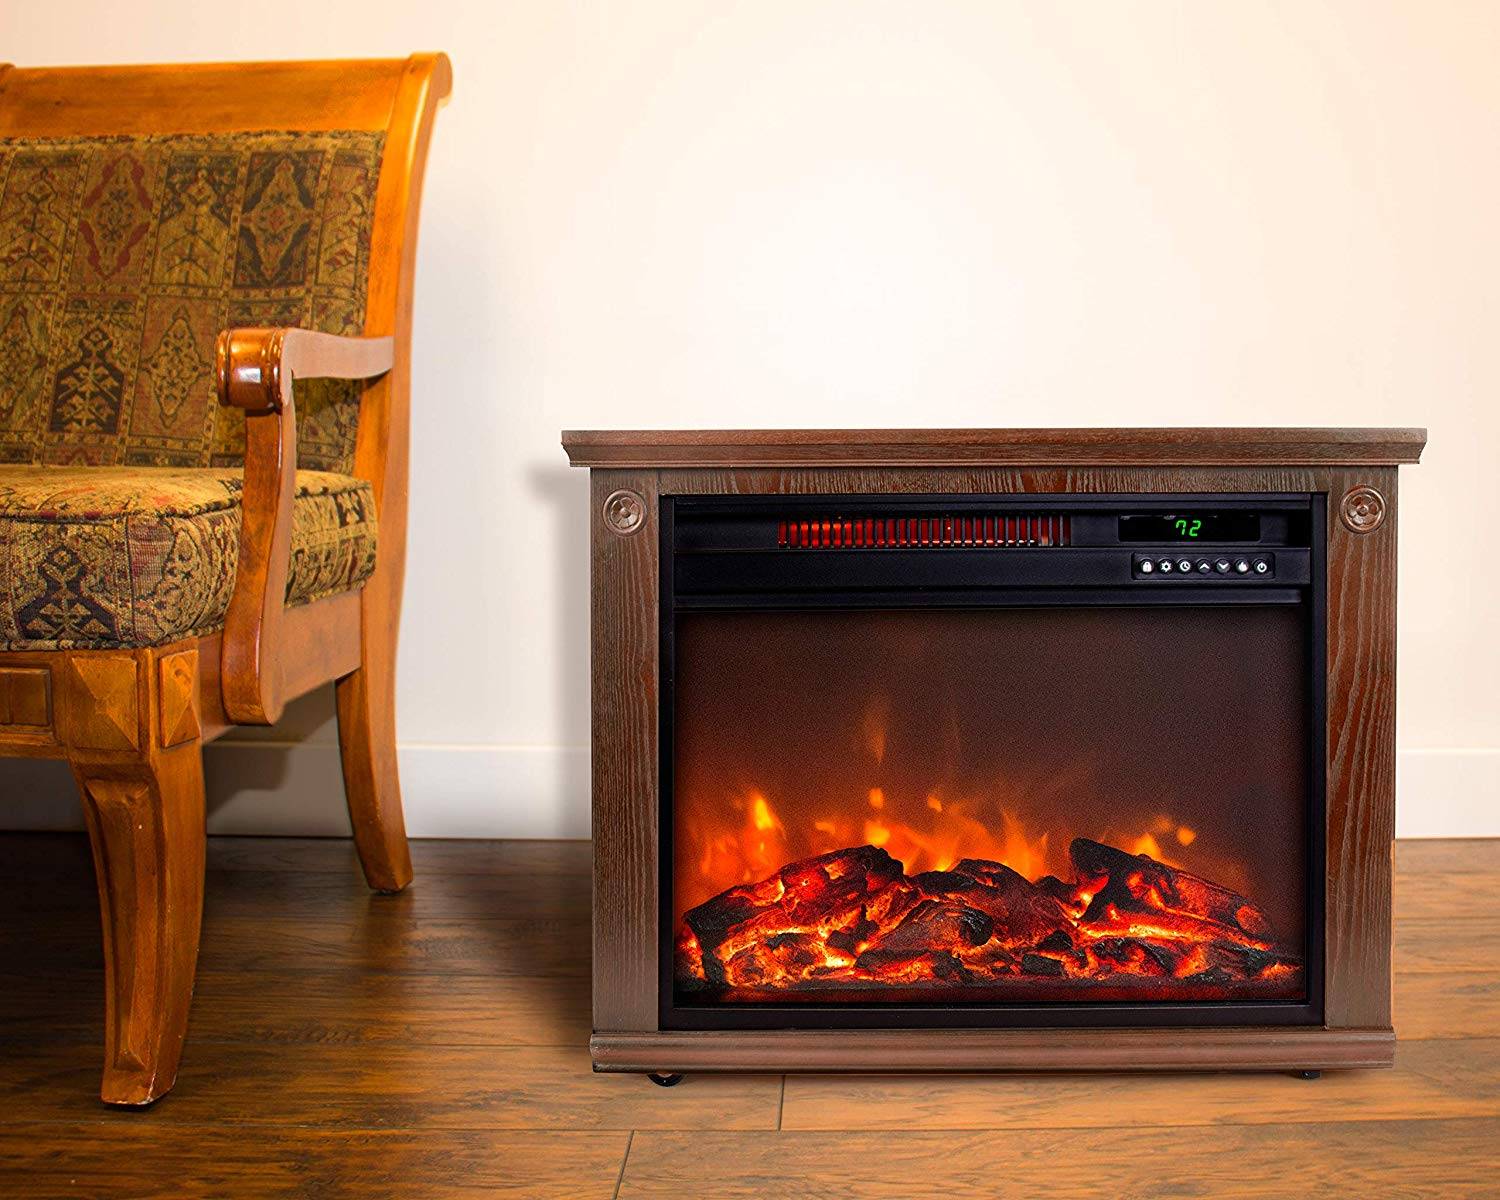 Lifesmart Large Room Infrared Quartz Fireplace in Burnished Oak Finish - Best Electric FirePlaces